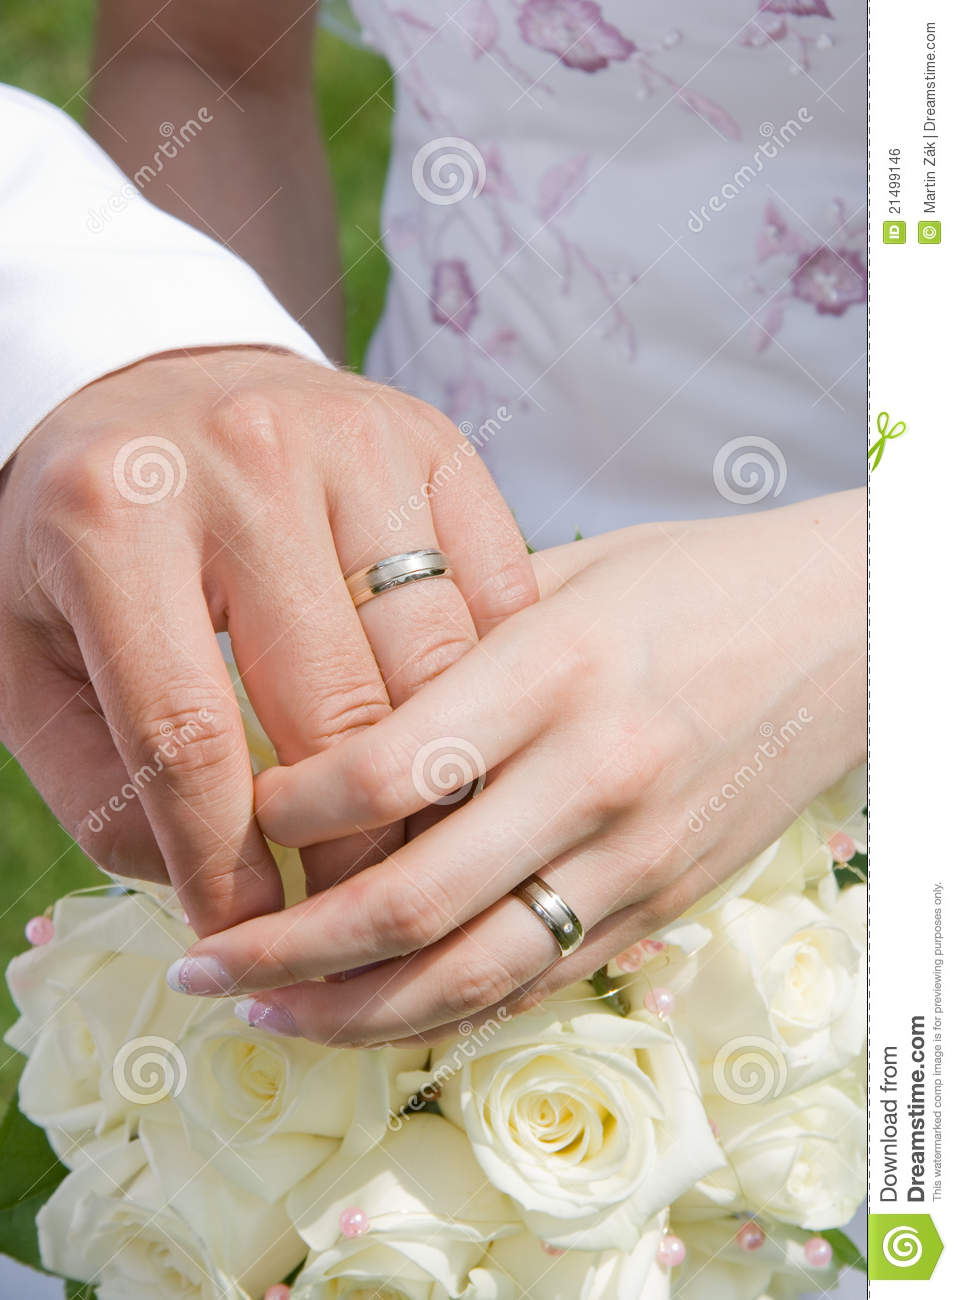 Couple is holding their hands together and showing off their rings    Wedding Rings Holding Hands